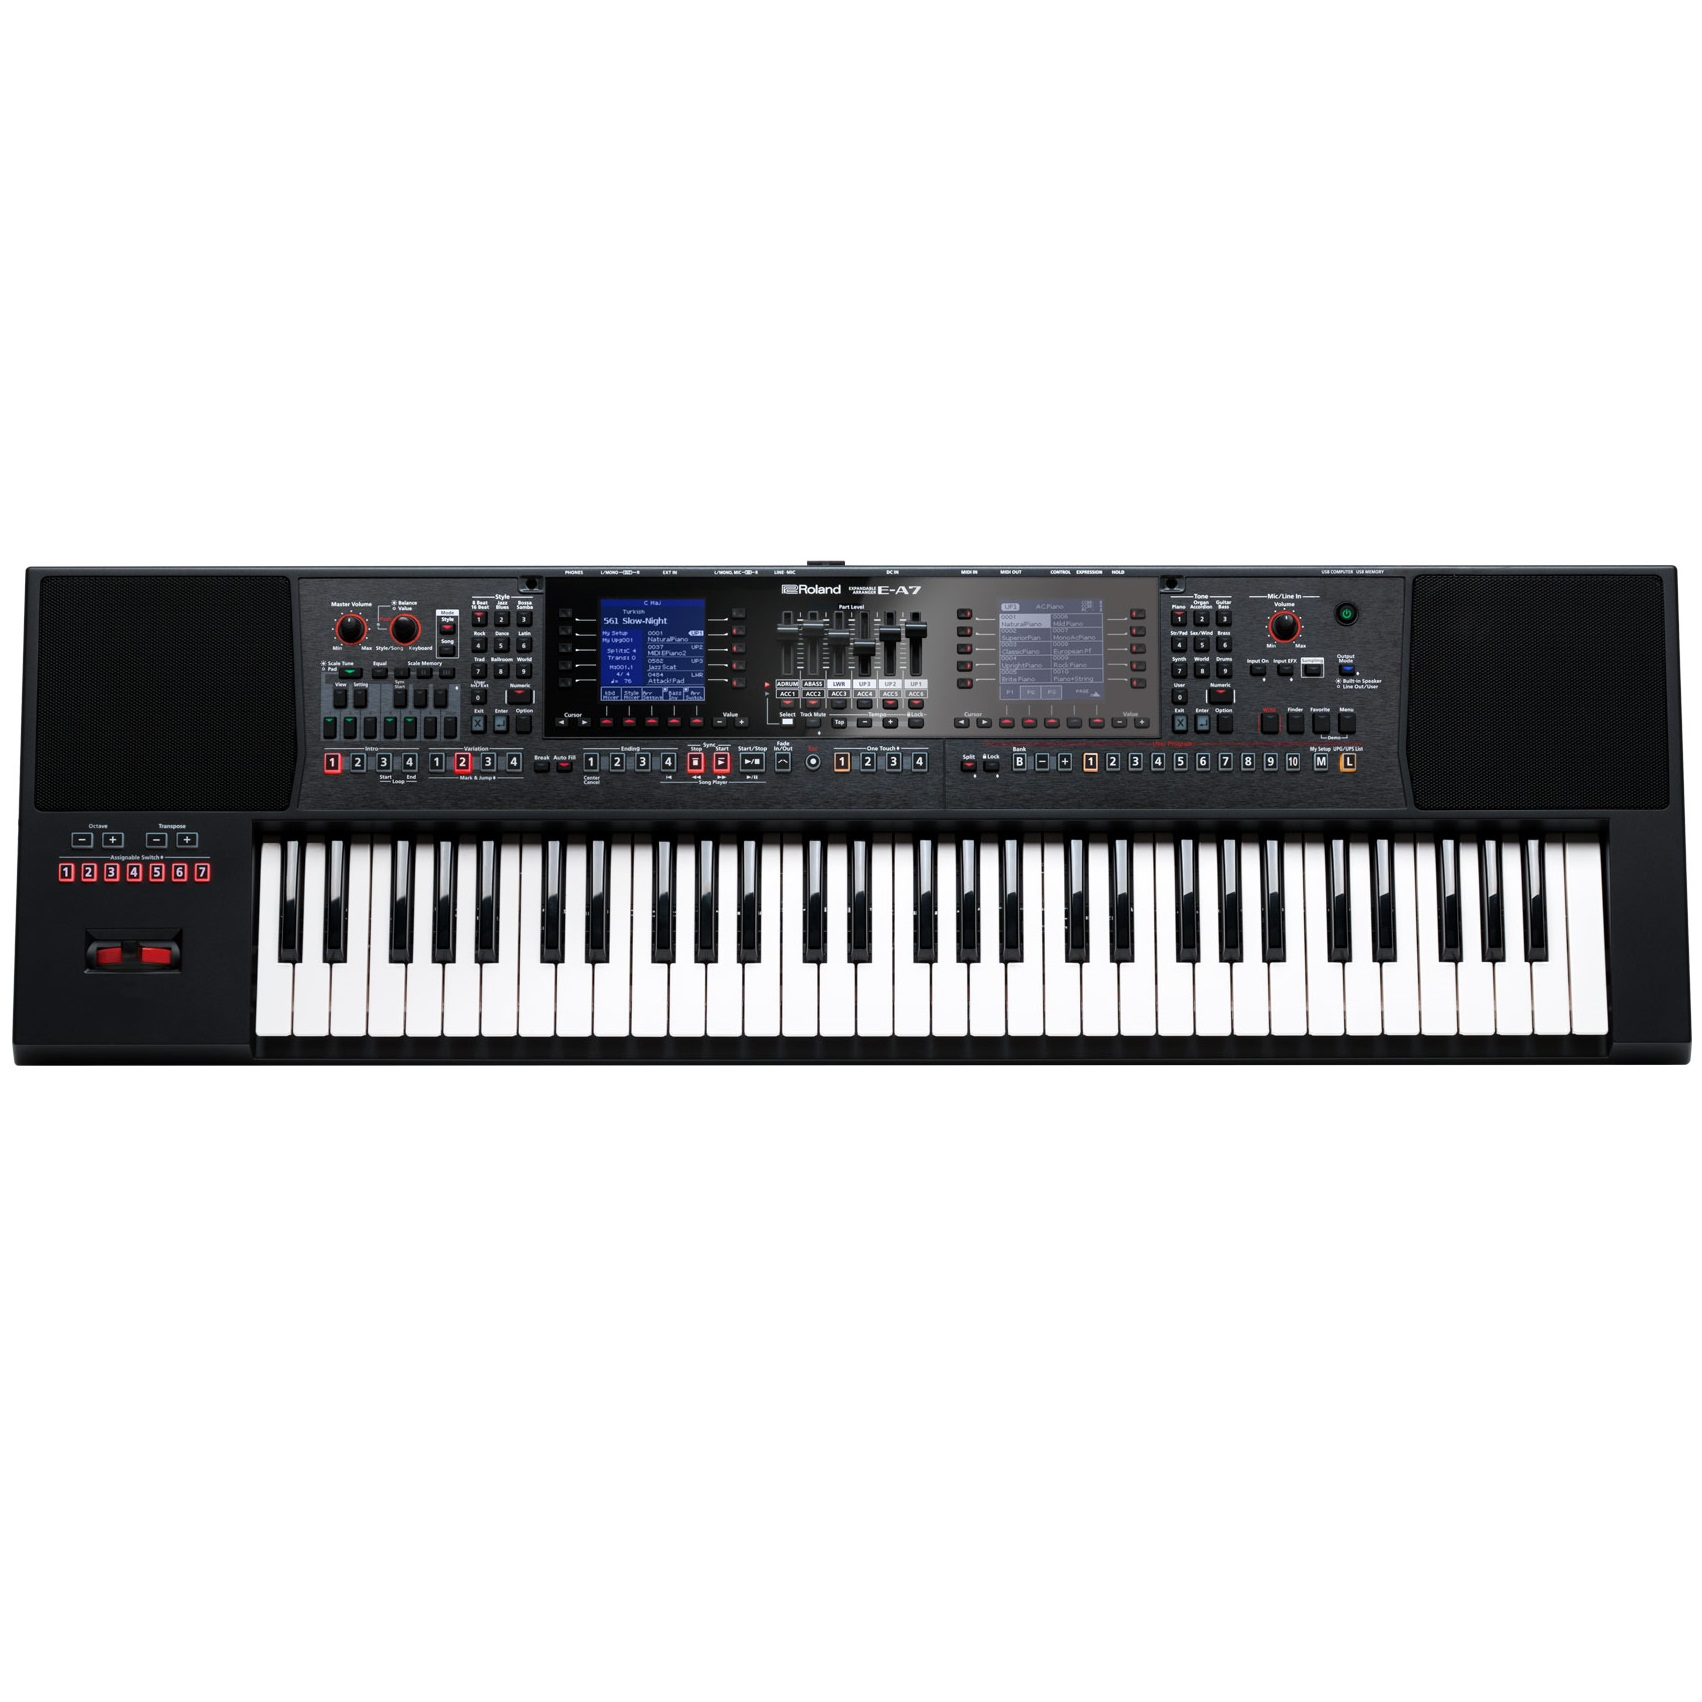 Roland E-A7 Expendable Arranger Keyboard